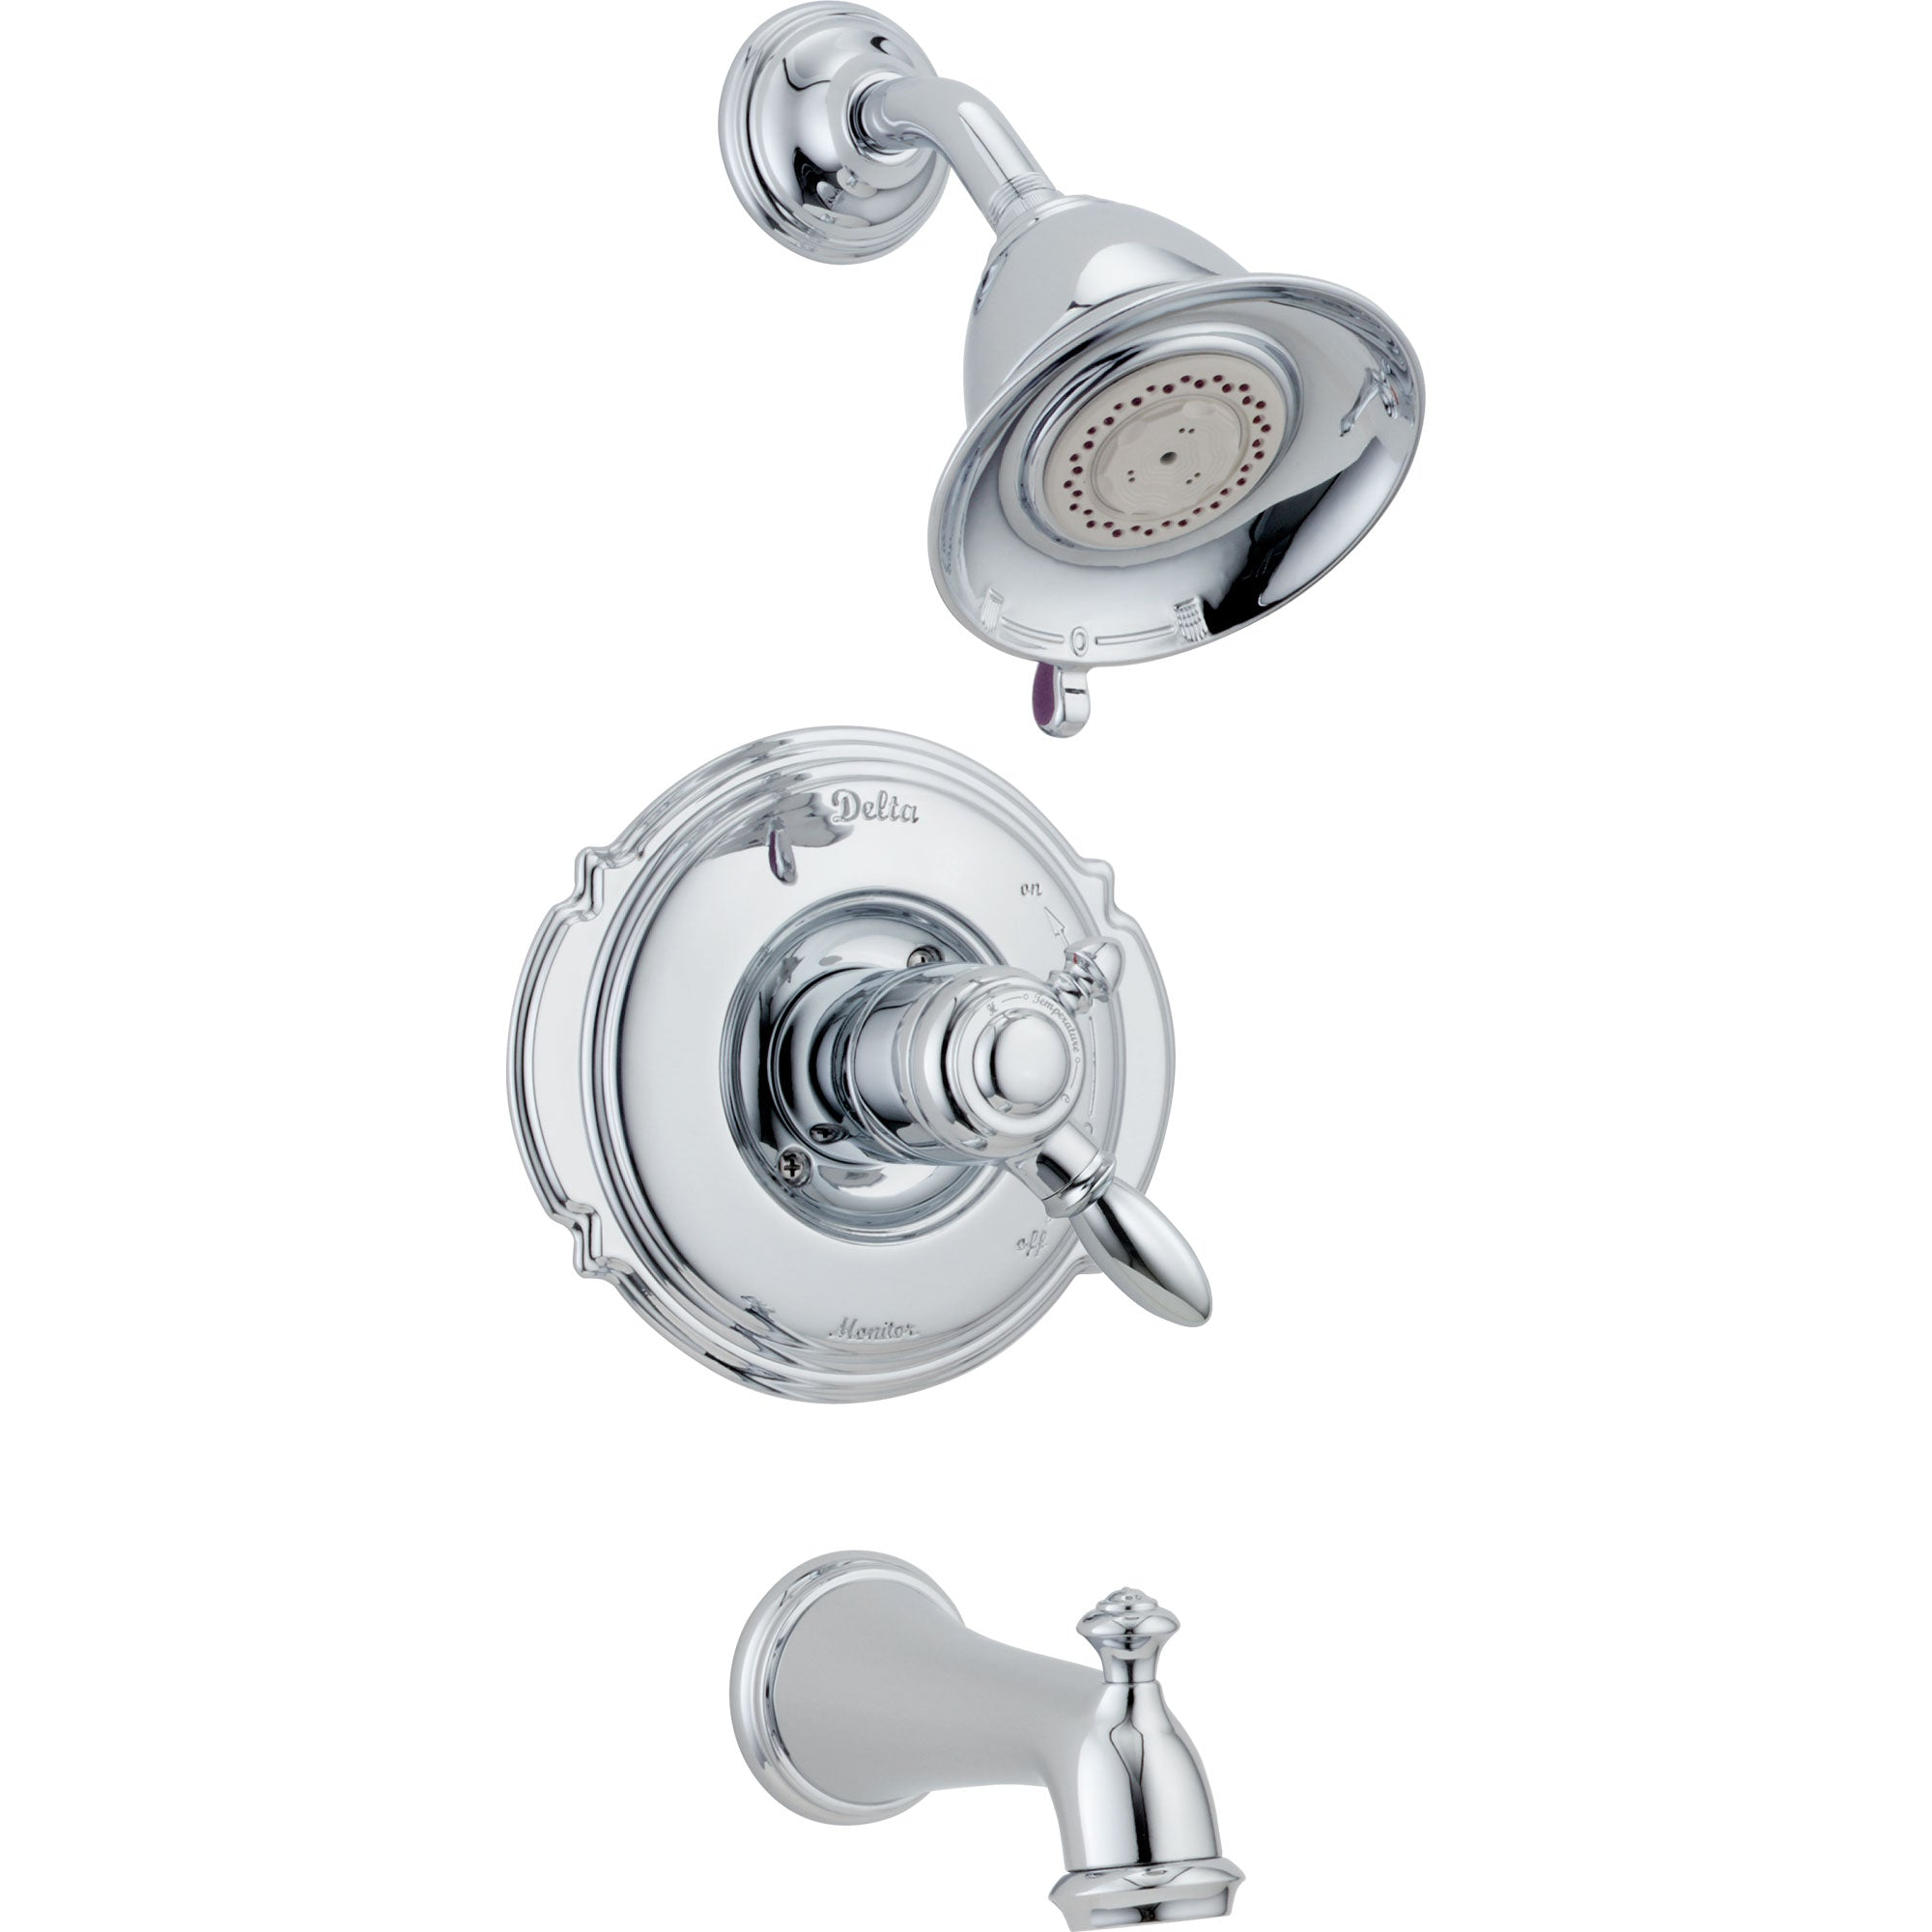 Delta Victorian Chrome Pressure Balanced Tub and Shower Faucet Trim Kit 779413